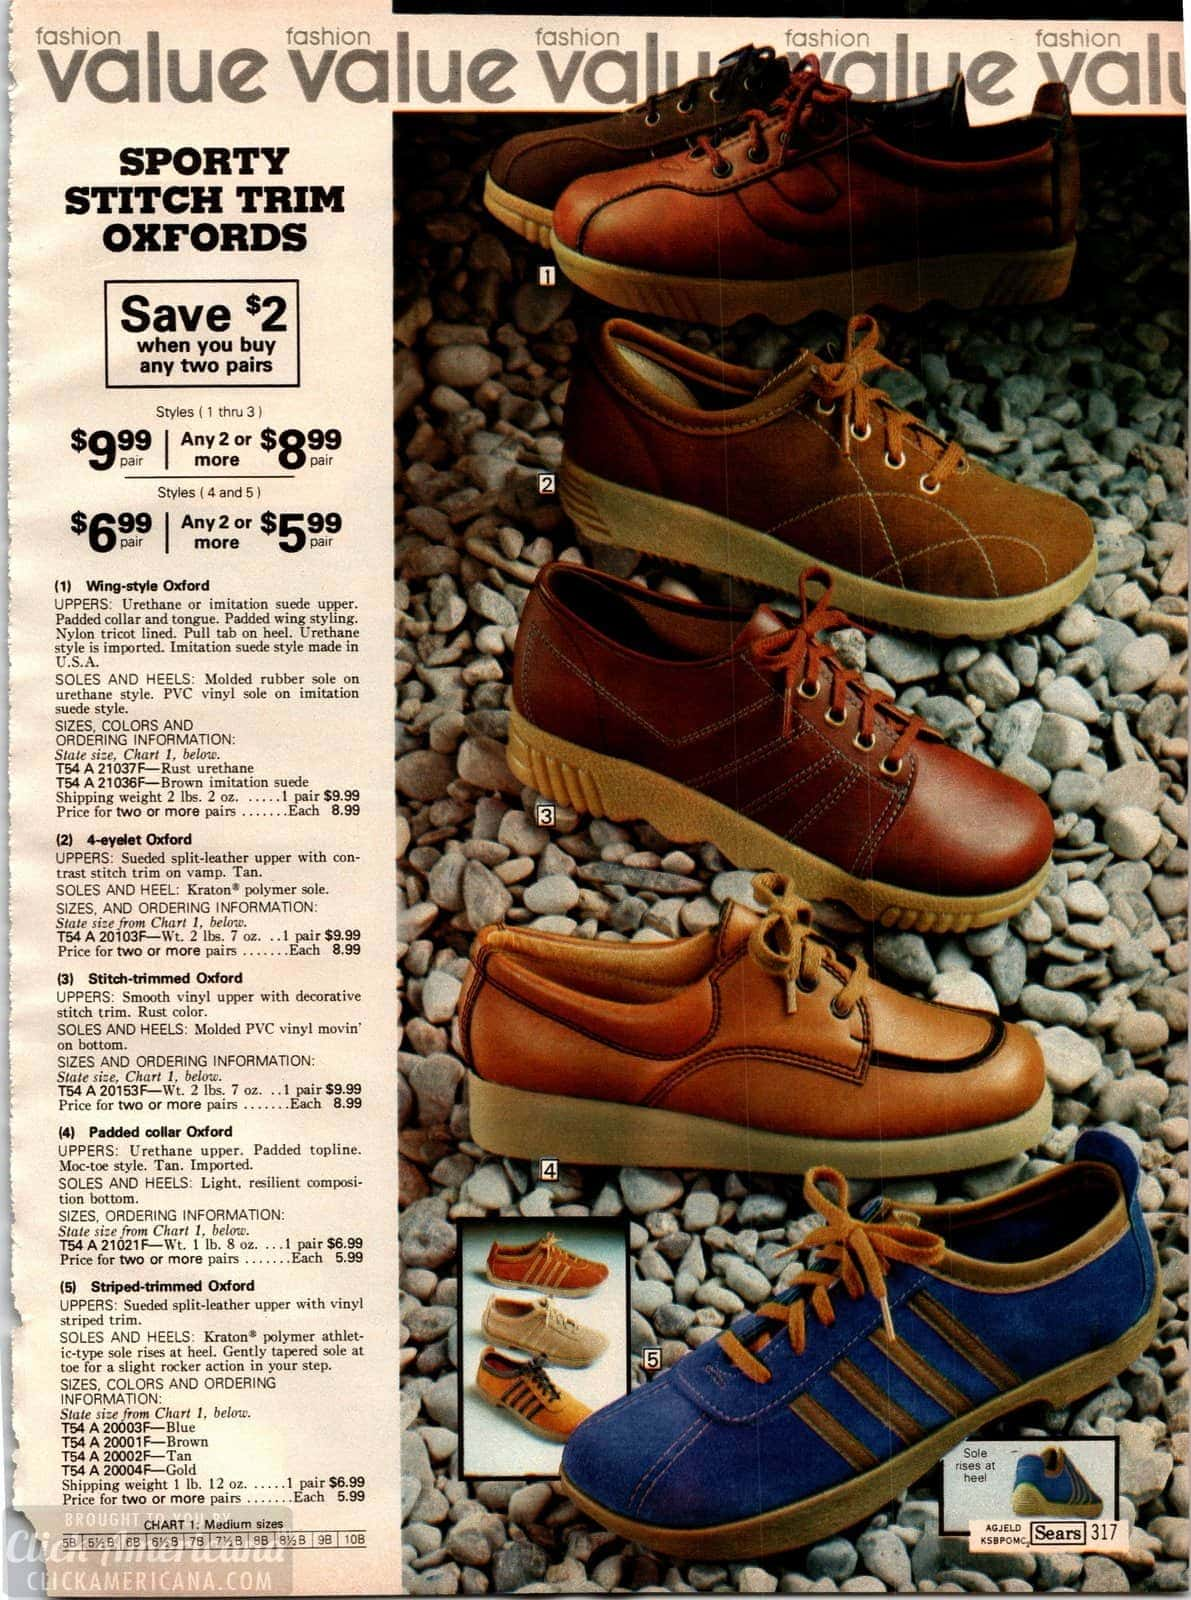 Sporty stitch trim Oxford athletic shoes from 1979